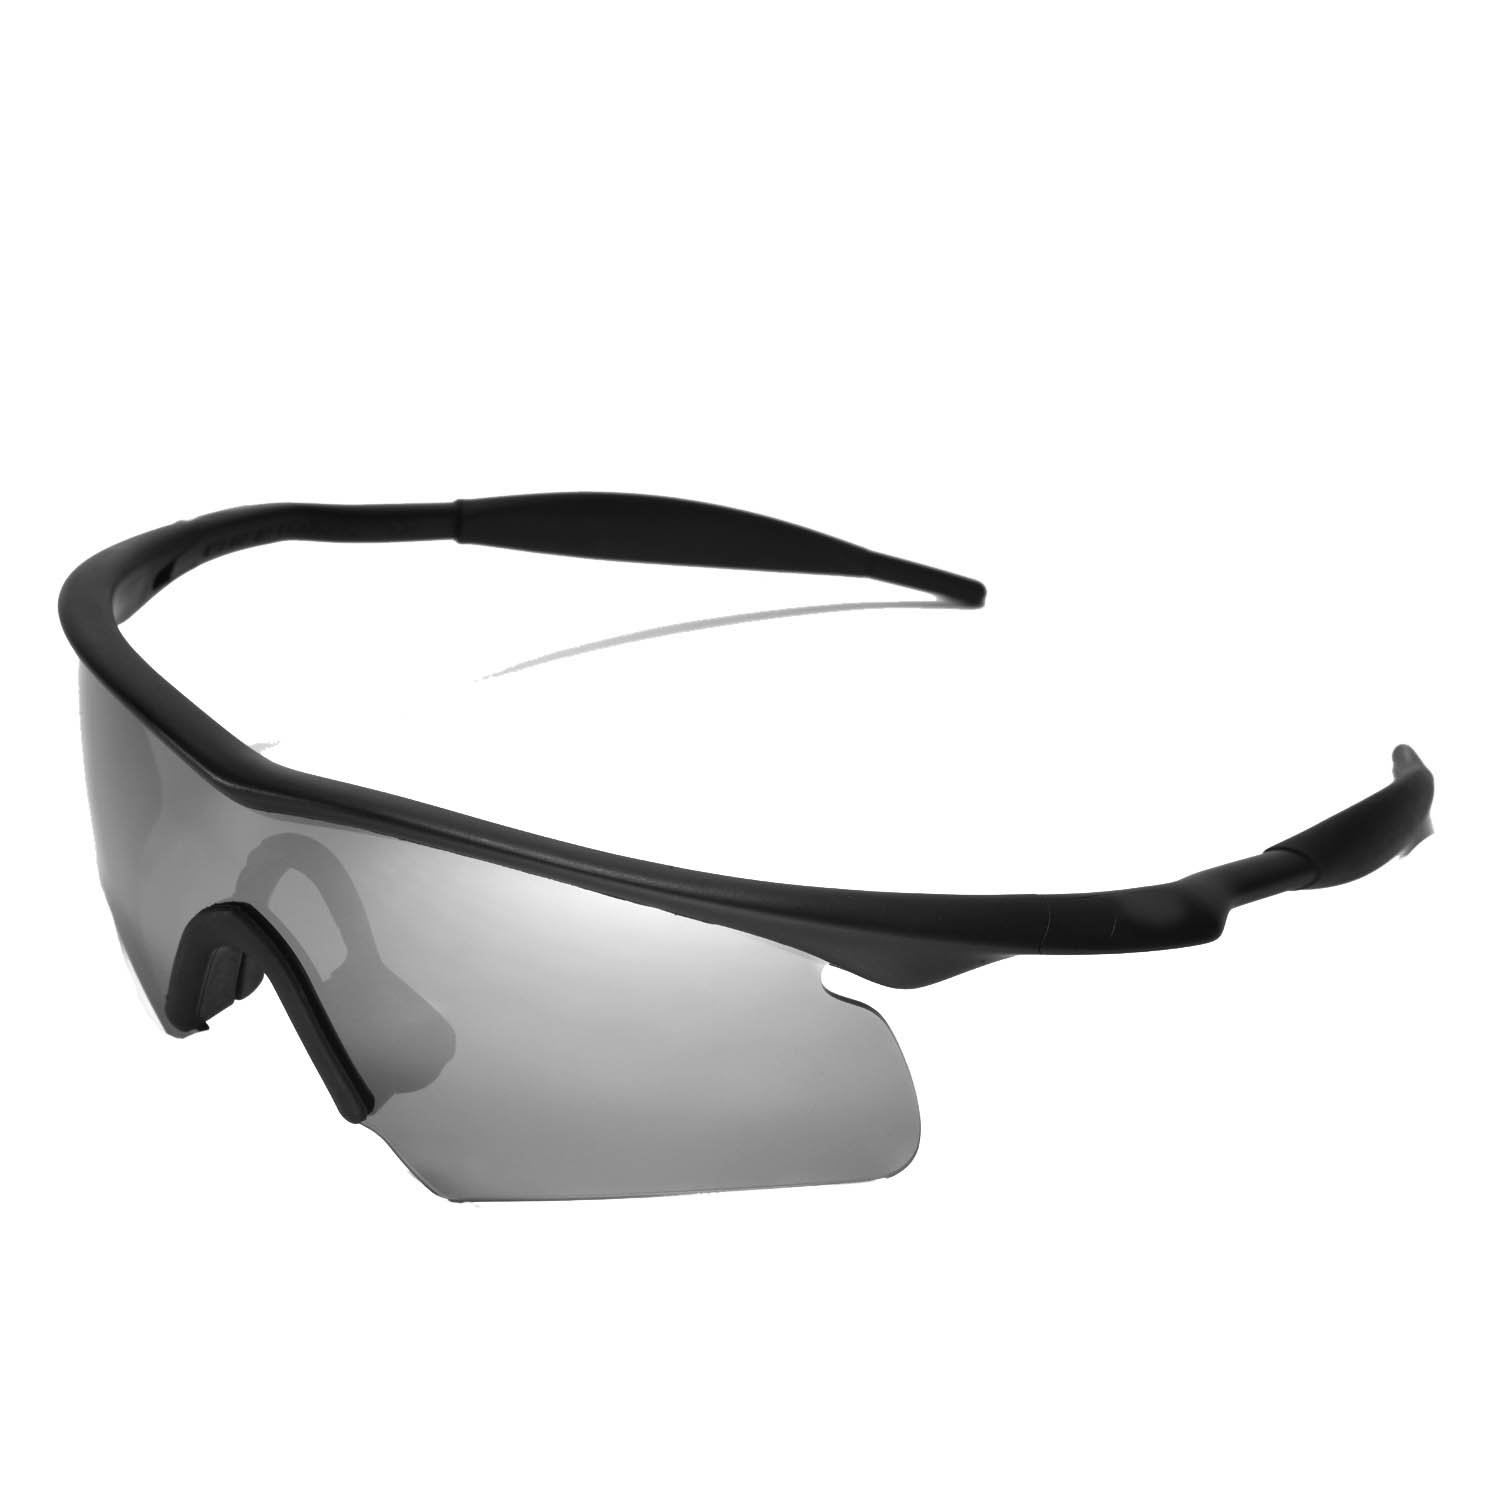 a0ed3b4aad Walleva Replacement Lenses for Oakley M Frame Hybrid Sunglasses - Multiple  Options  (Black )